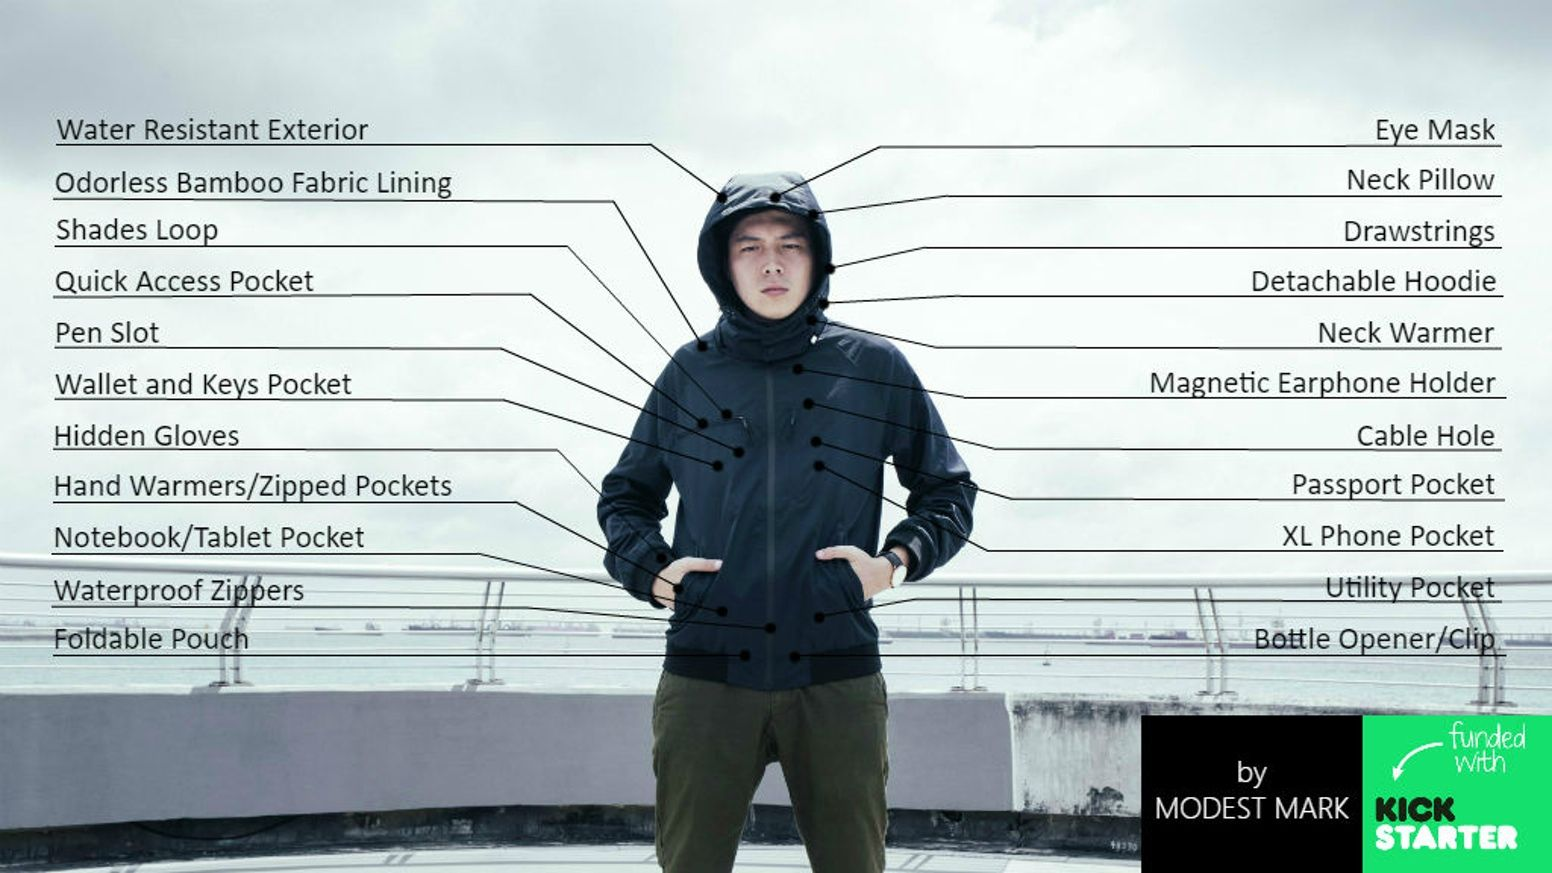 The one choice for your everyday outerwear complete with 18 features including water-resist, anti-odor and heat regulating technology.